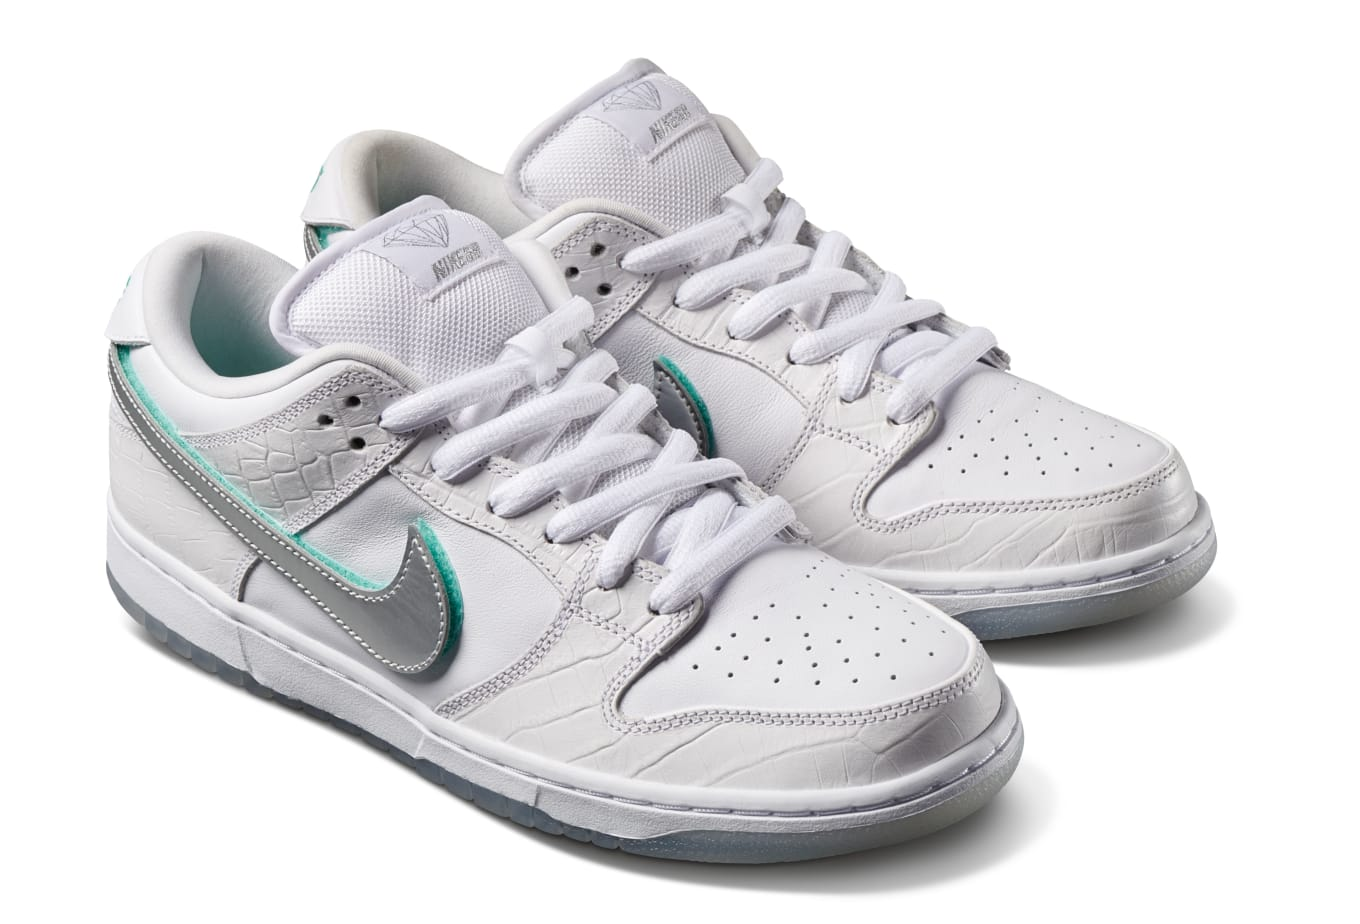 buy popular c505e 1b3bc Reveals SB Dunk Details. White colorway will drop exclusively at skate  shops.